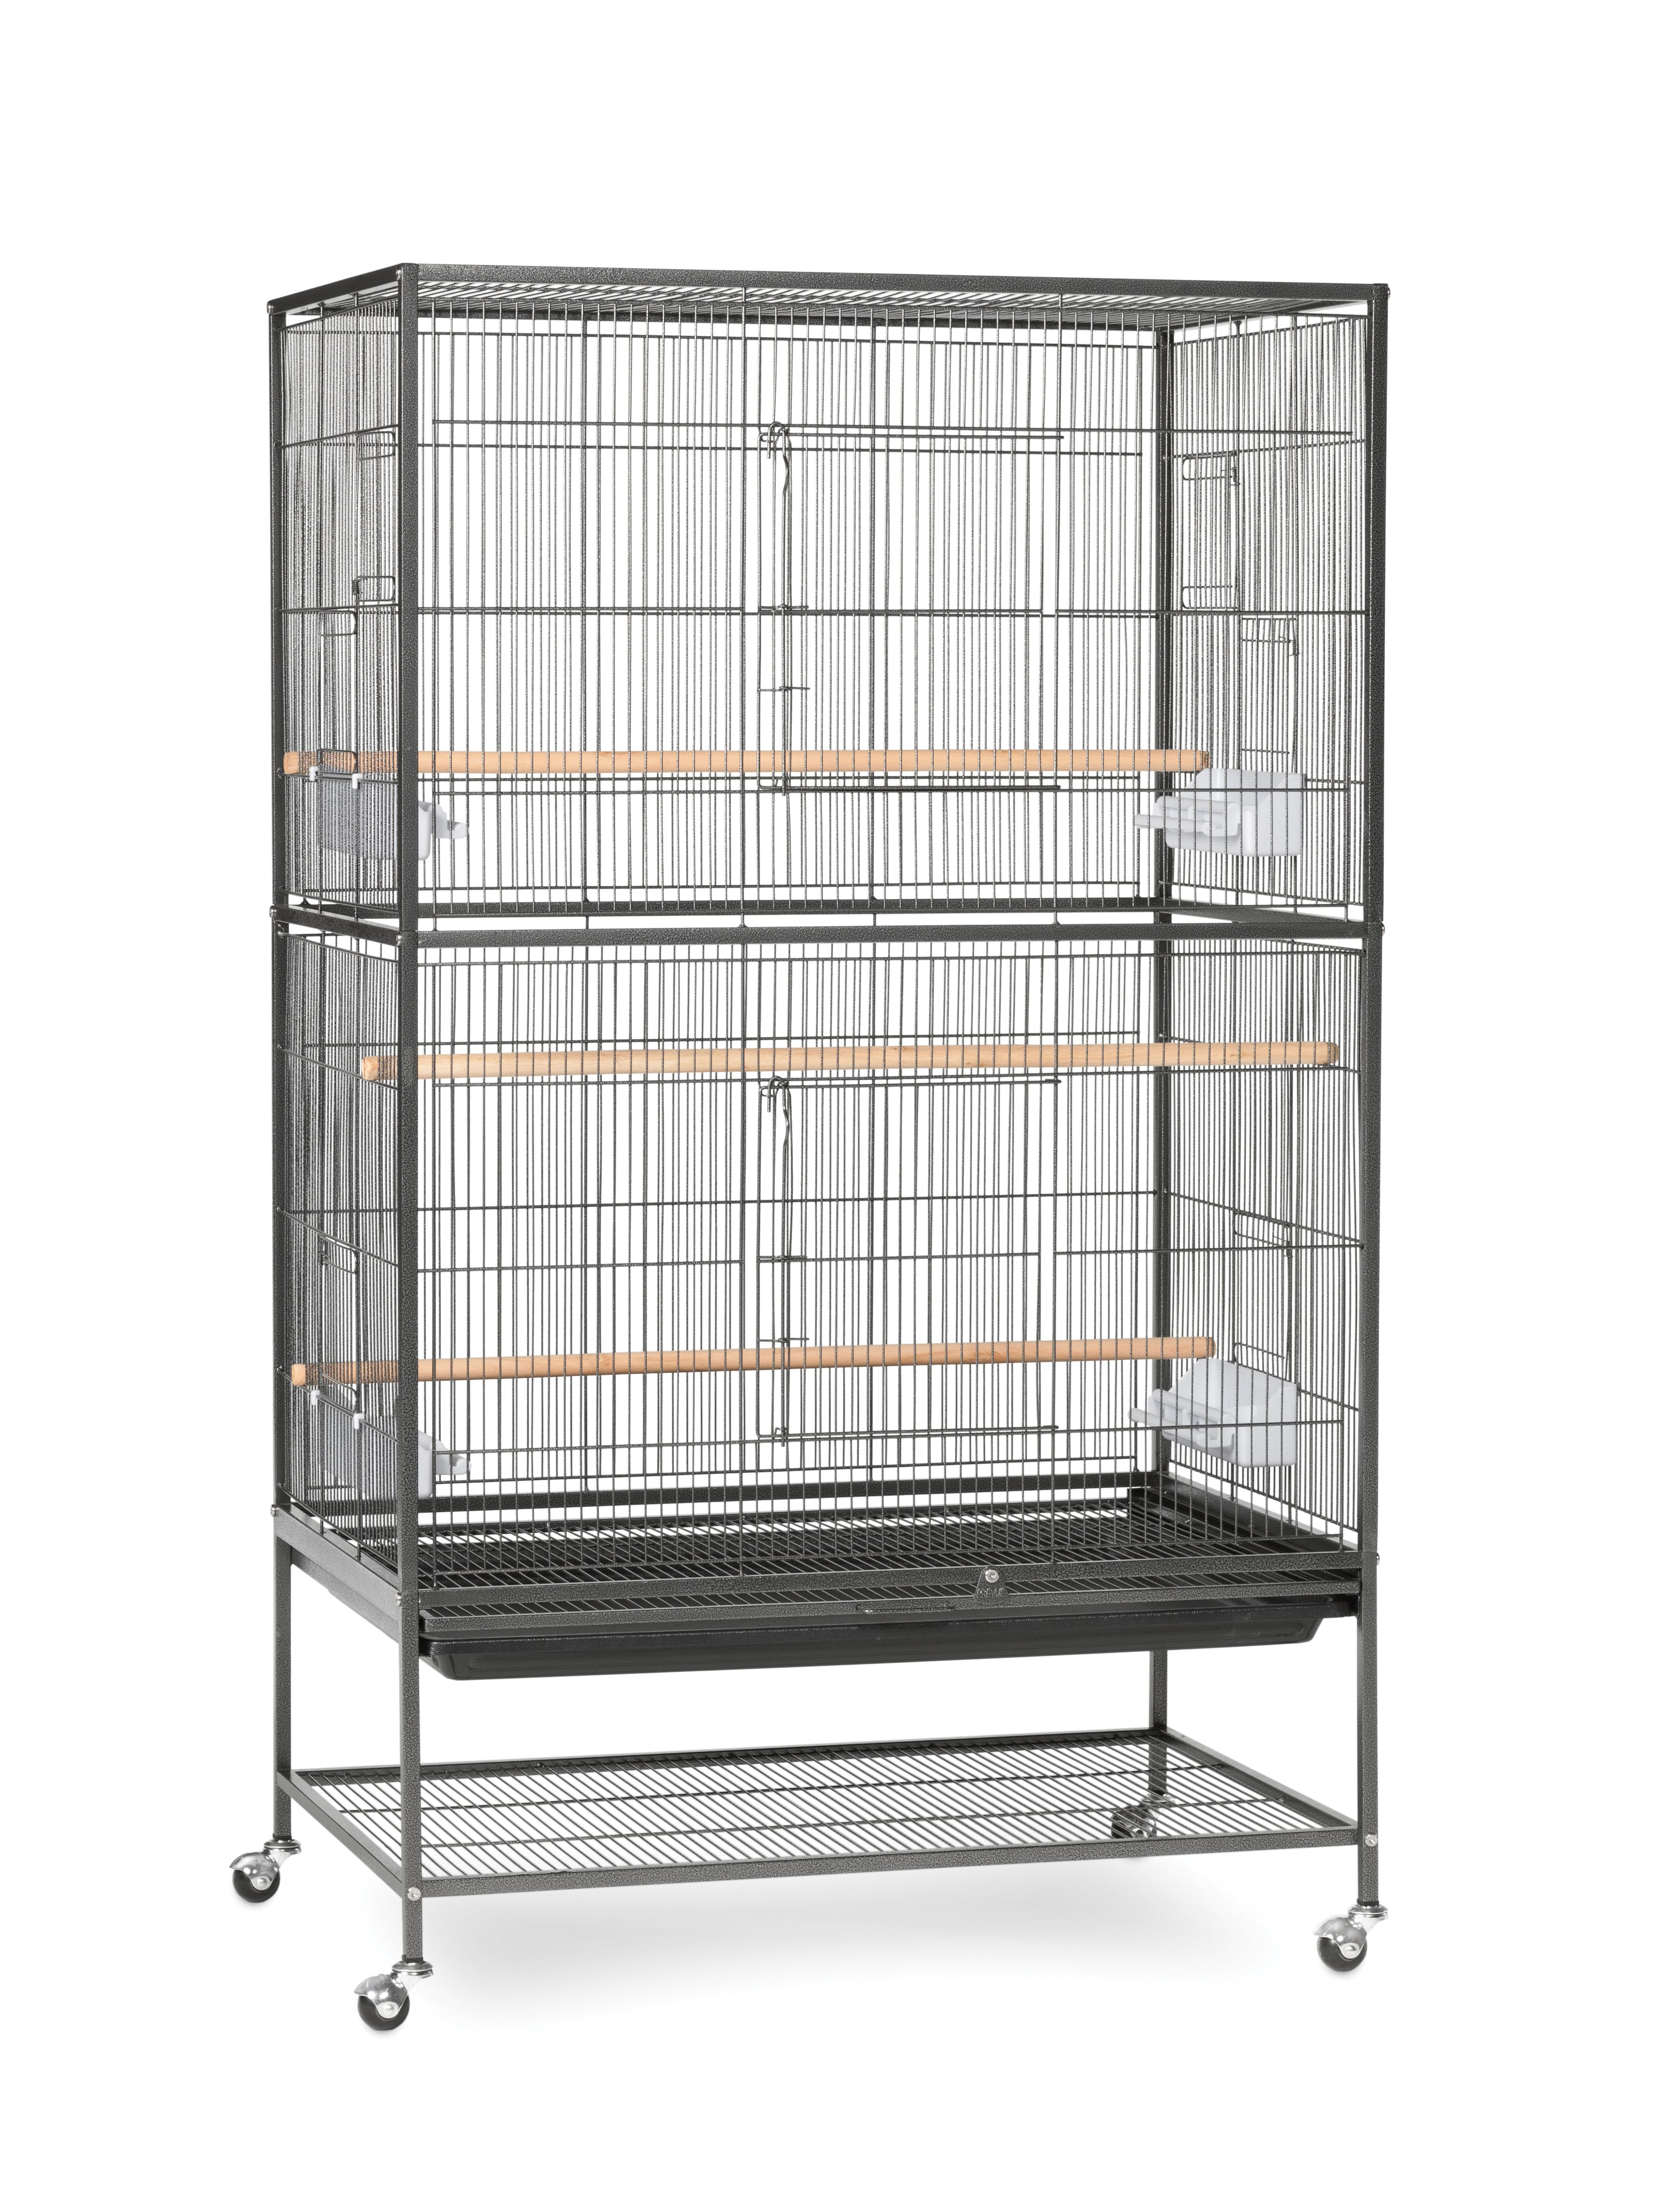 Big bird cages for cheap bird cages pinterest big for Cheap c c cages